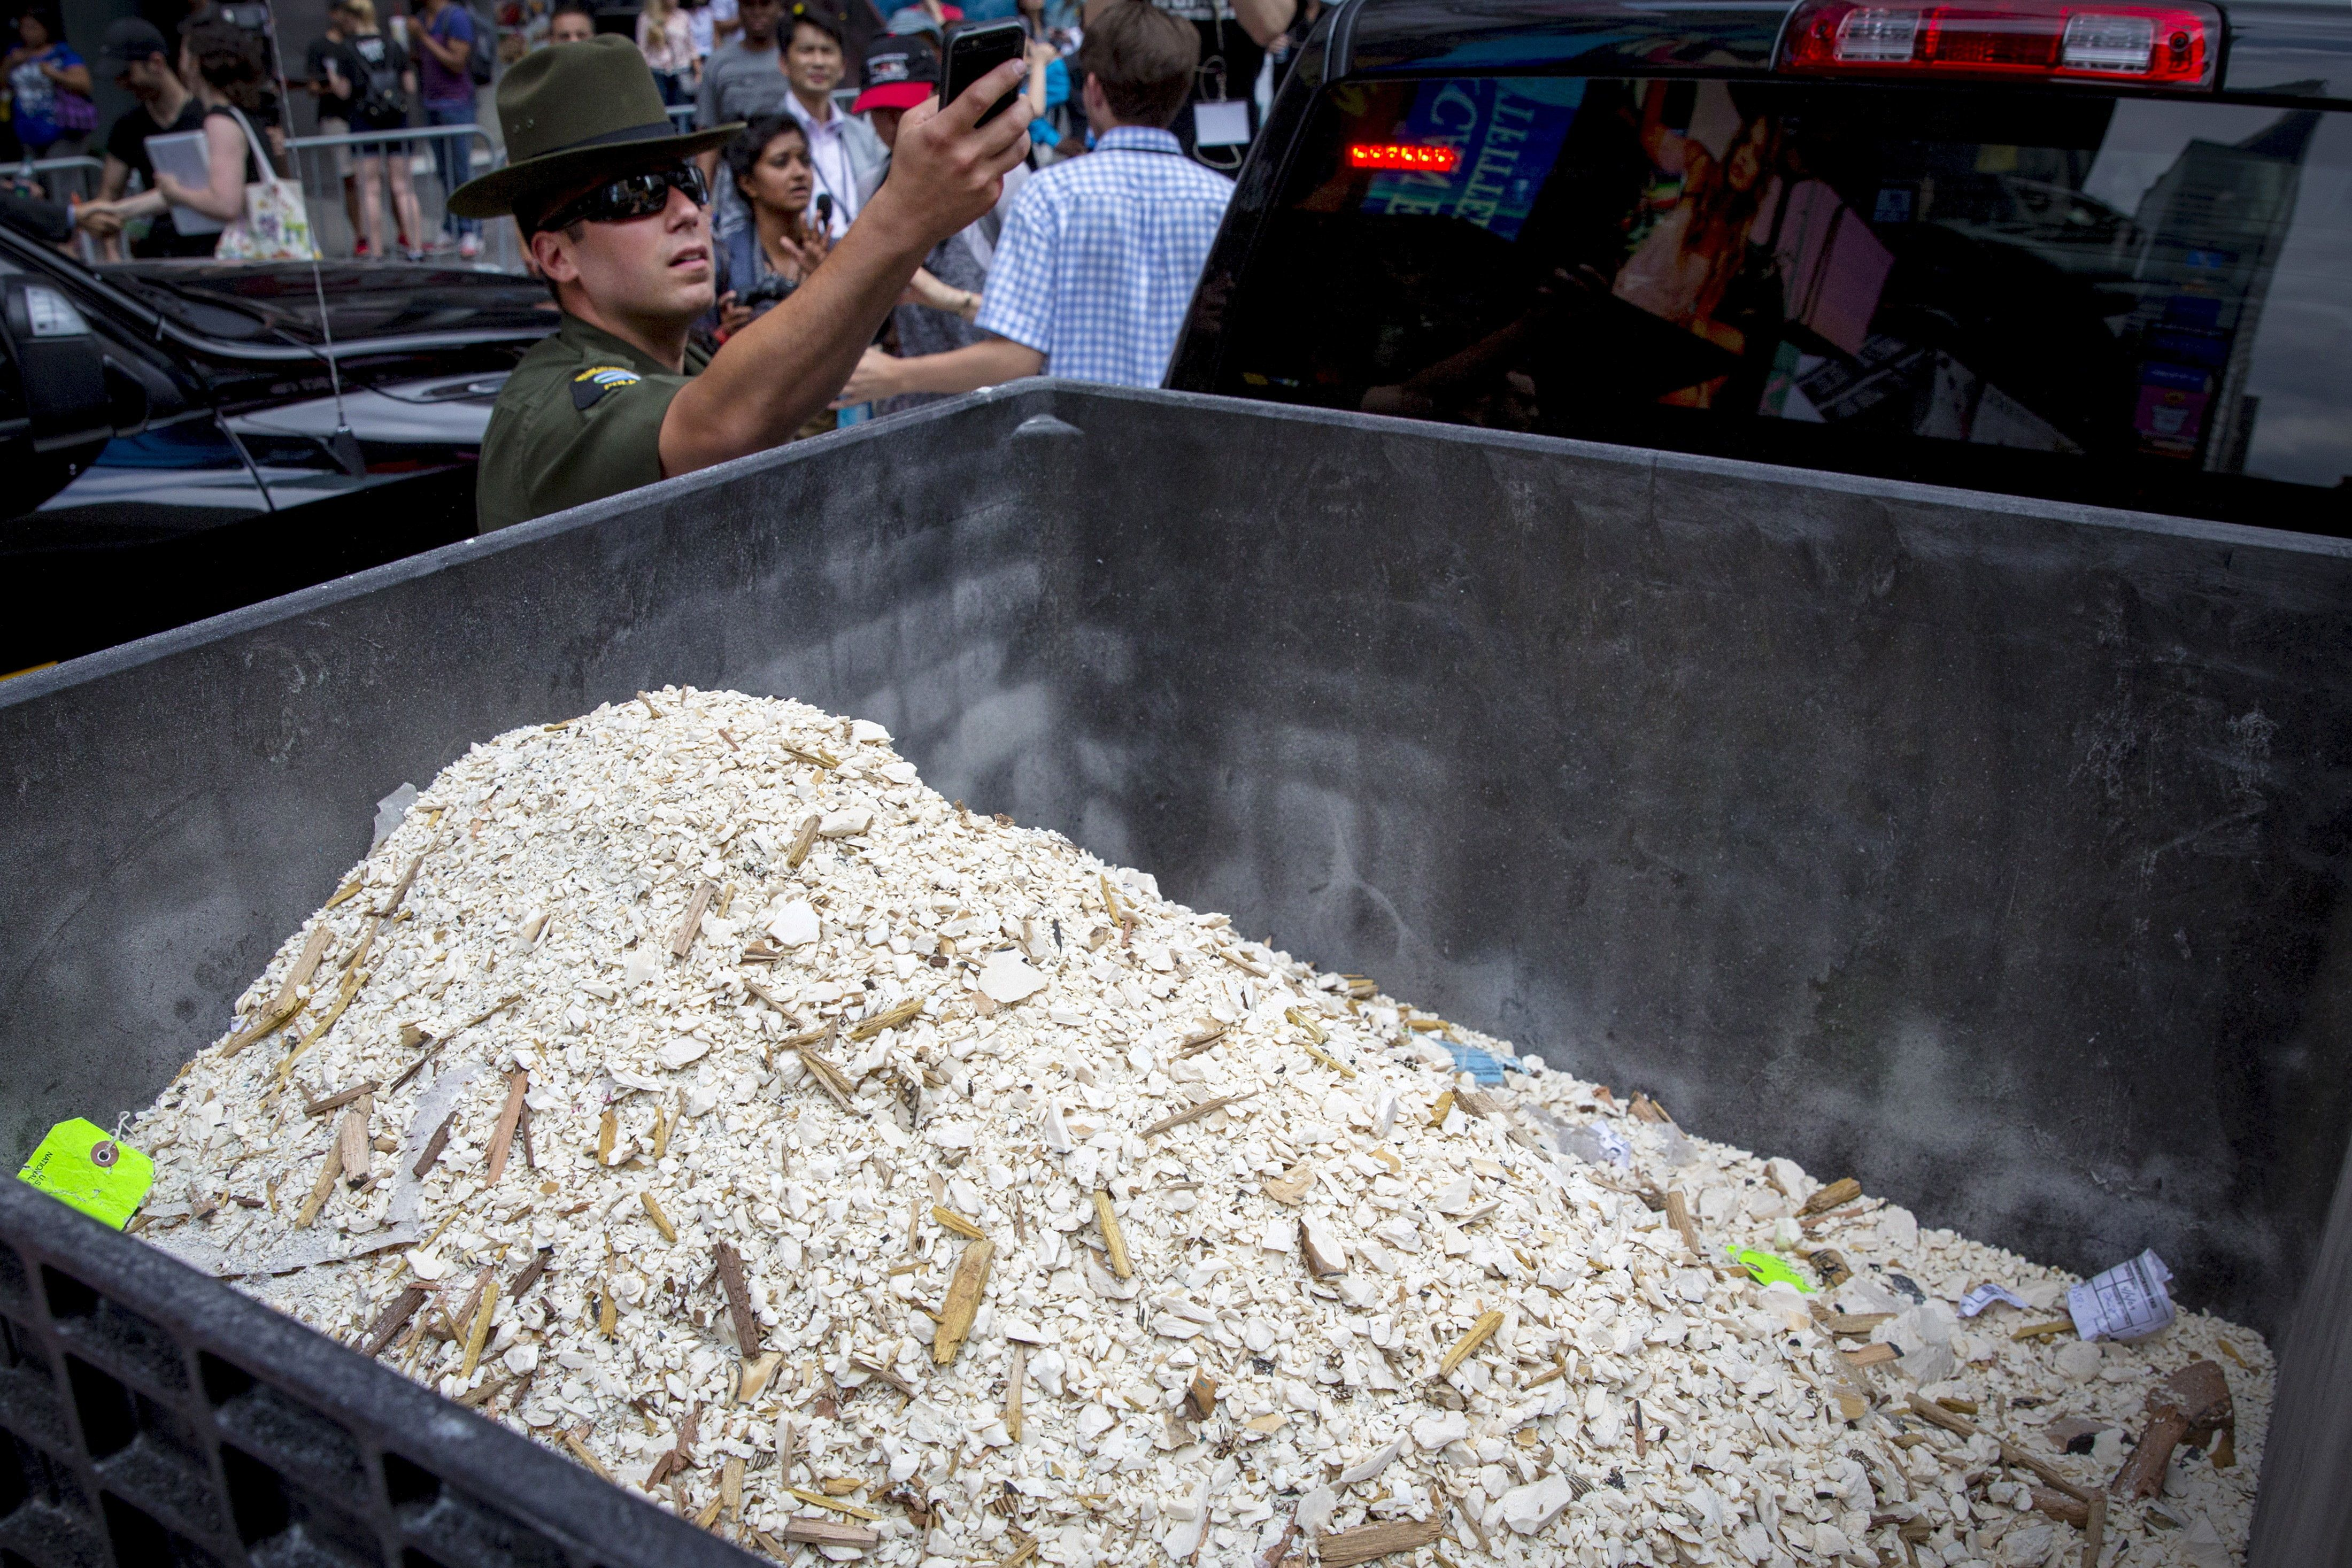 A New York State Department of Environmental Conservation enforcement officer photographs crushed pieces of confiscated ivory in New York's Times Square June 19, 2015. More than a ton of ivory confiscated from New York and Philadelphia was crushed in Times Square on Friday to show intolerance for elephant poaching and the illegal ivory trade, federal wildlife authorities said.  REUTERS/Brendan McDermid